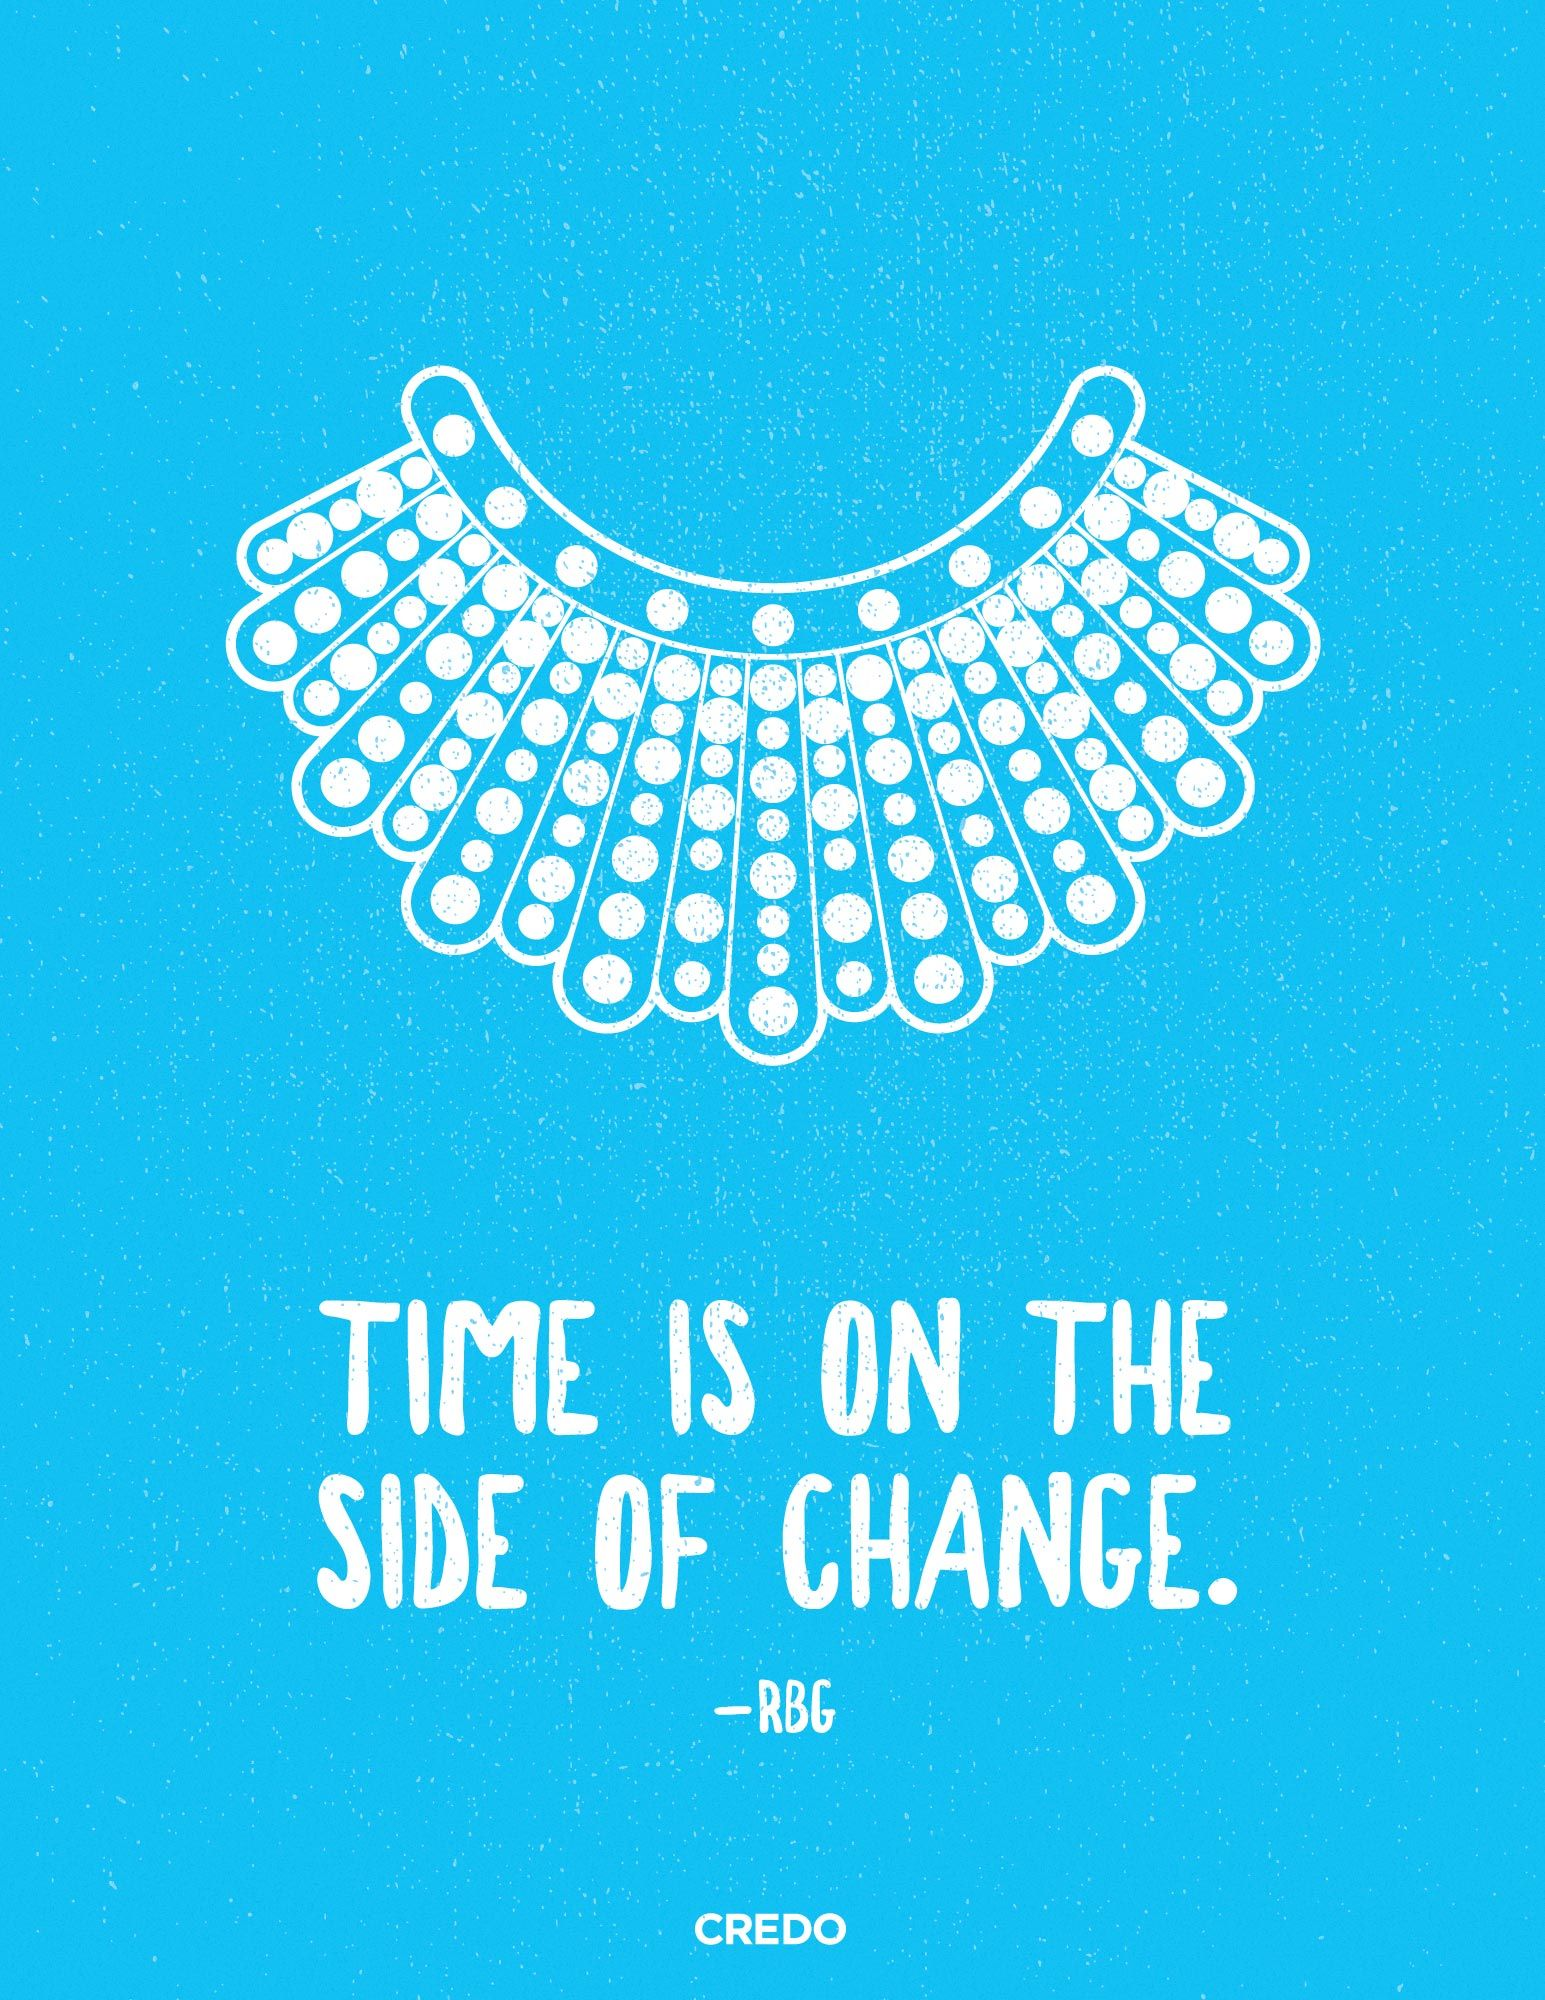 Time is on the side of change. RBG Tattoo quotes